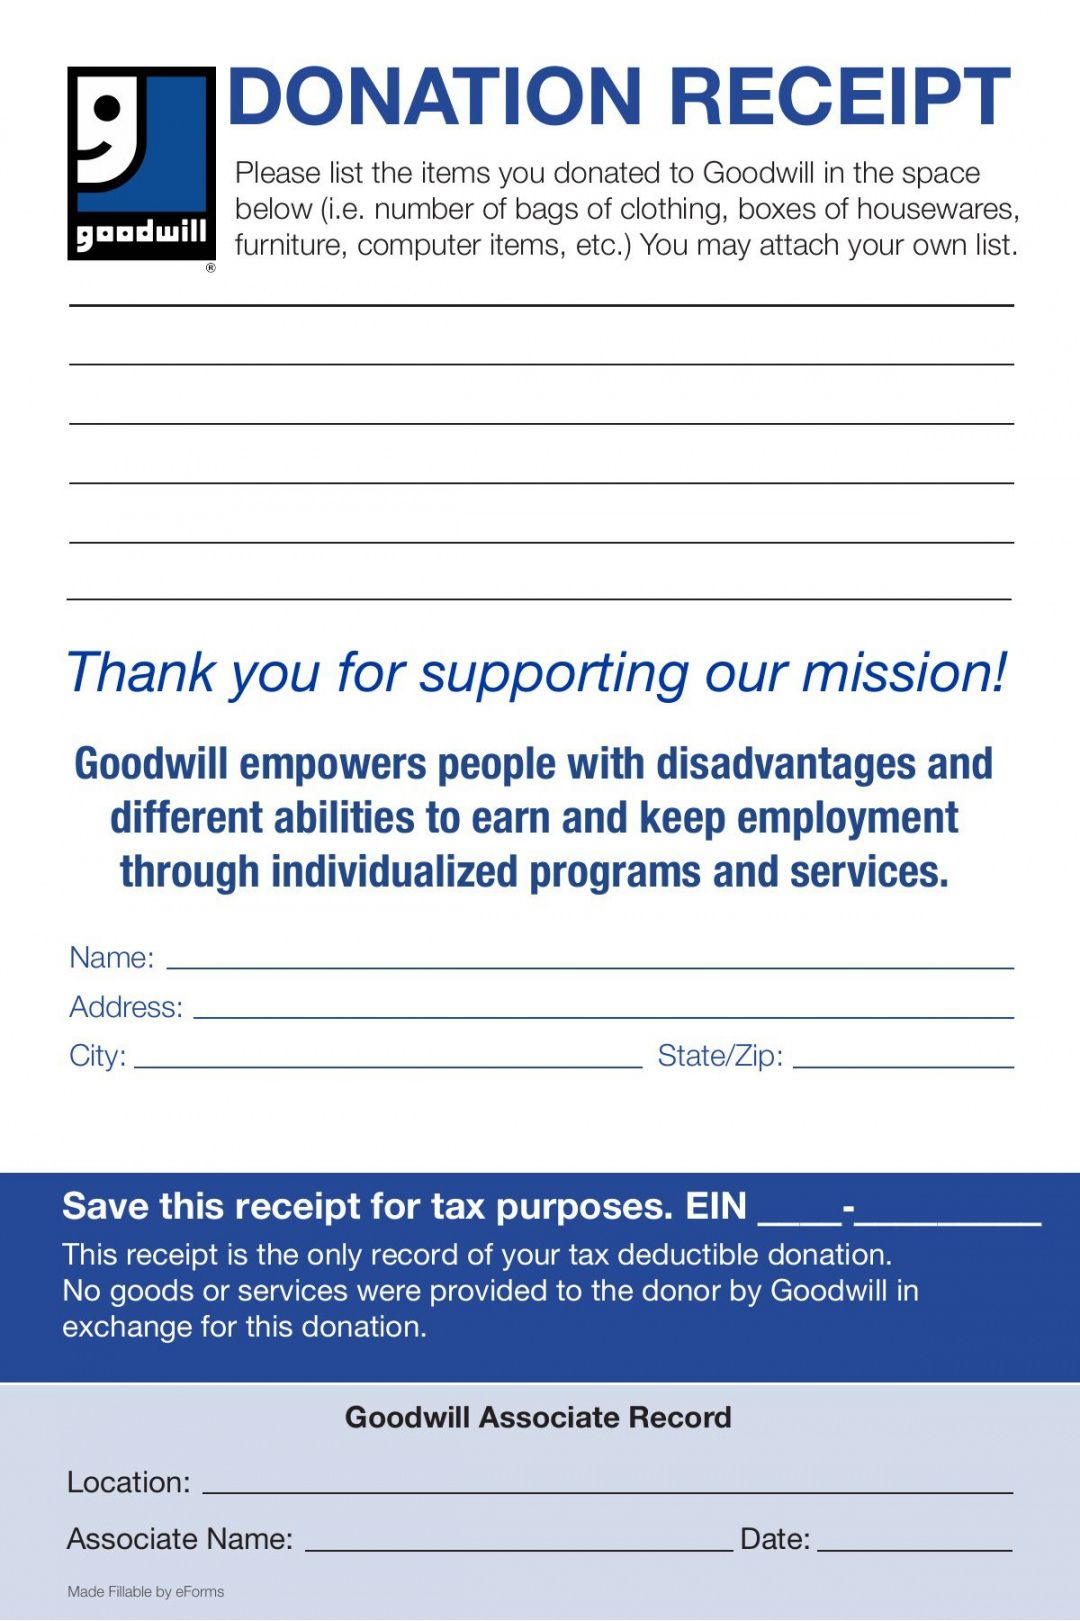 Explore Our Free Furniture Donation Receipt Template Receipt Template Donation Form Goodwill Donations